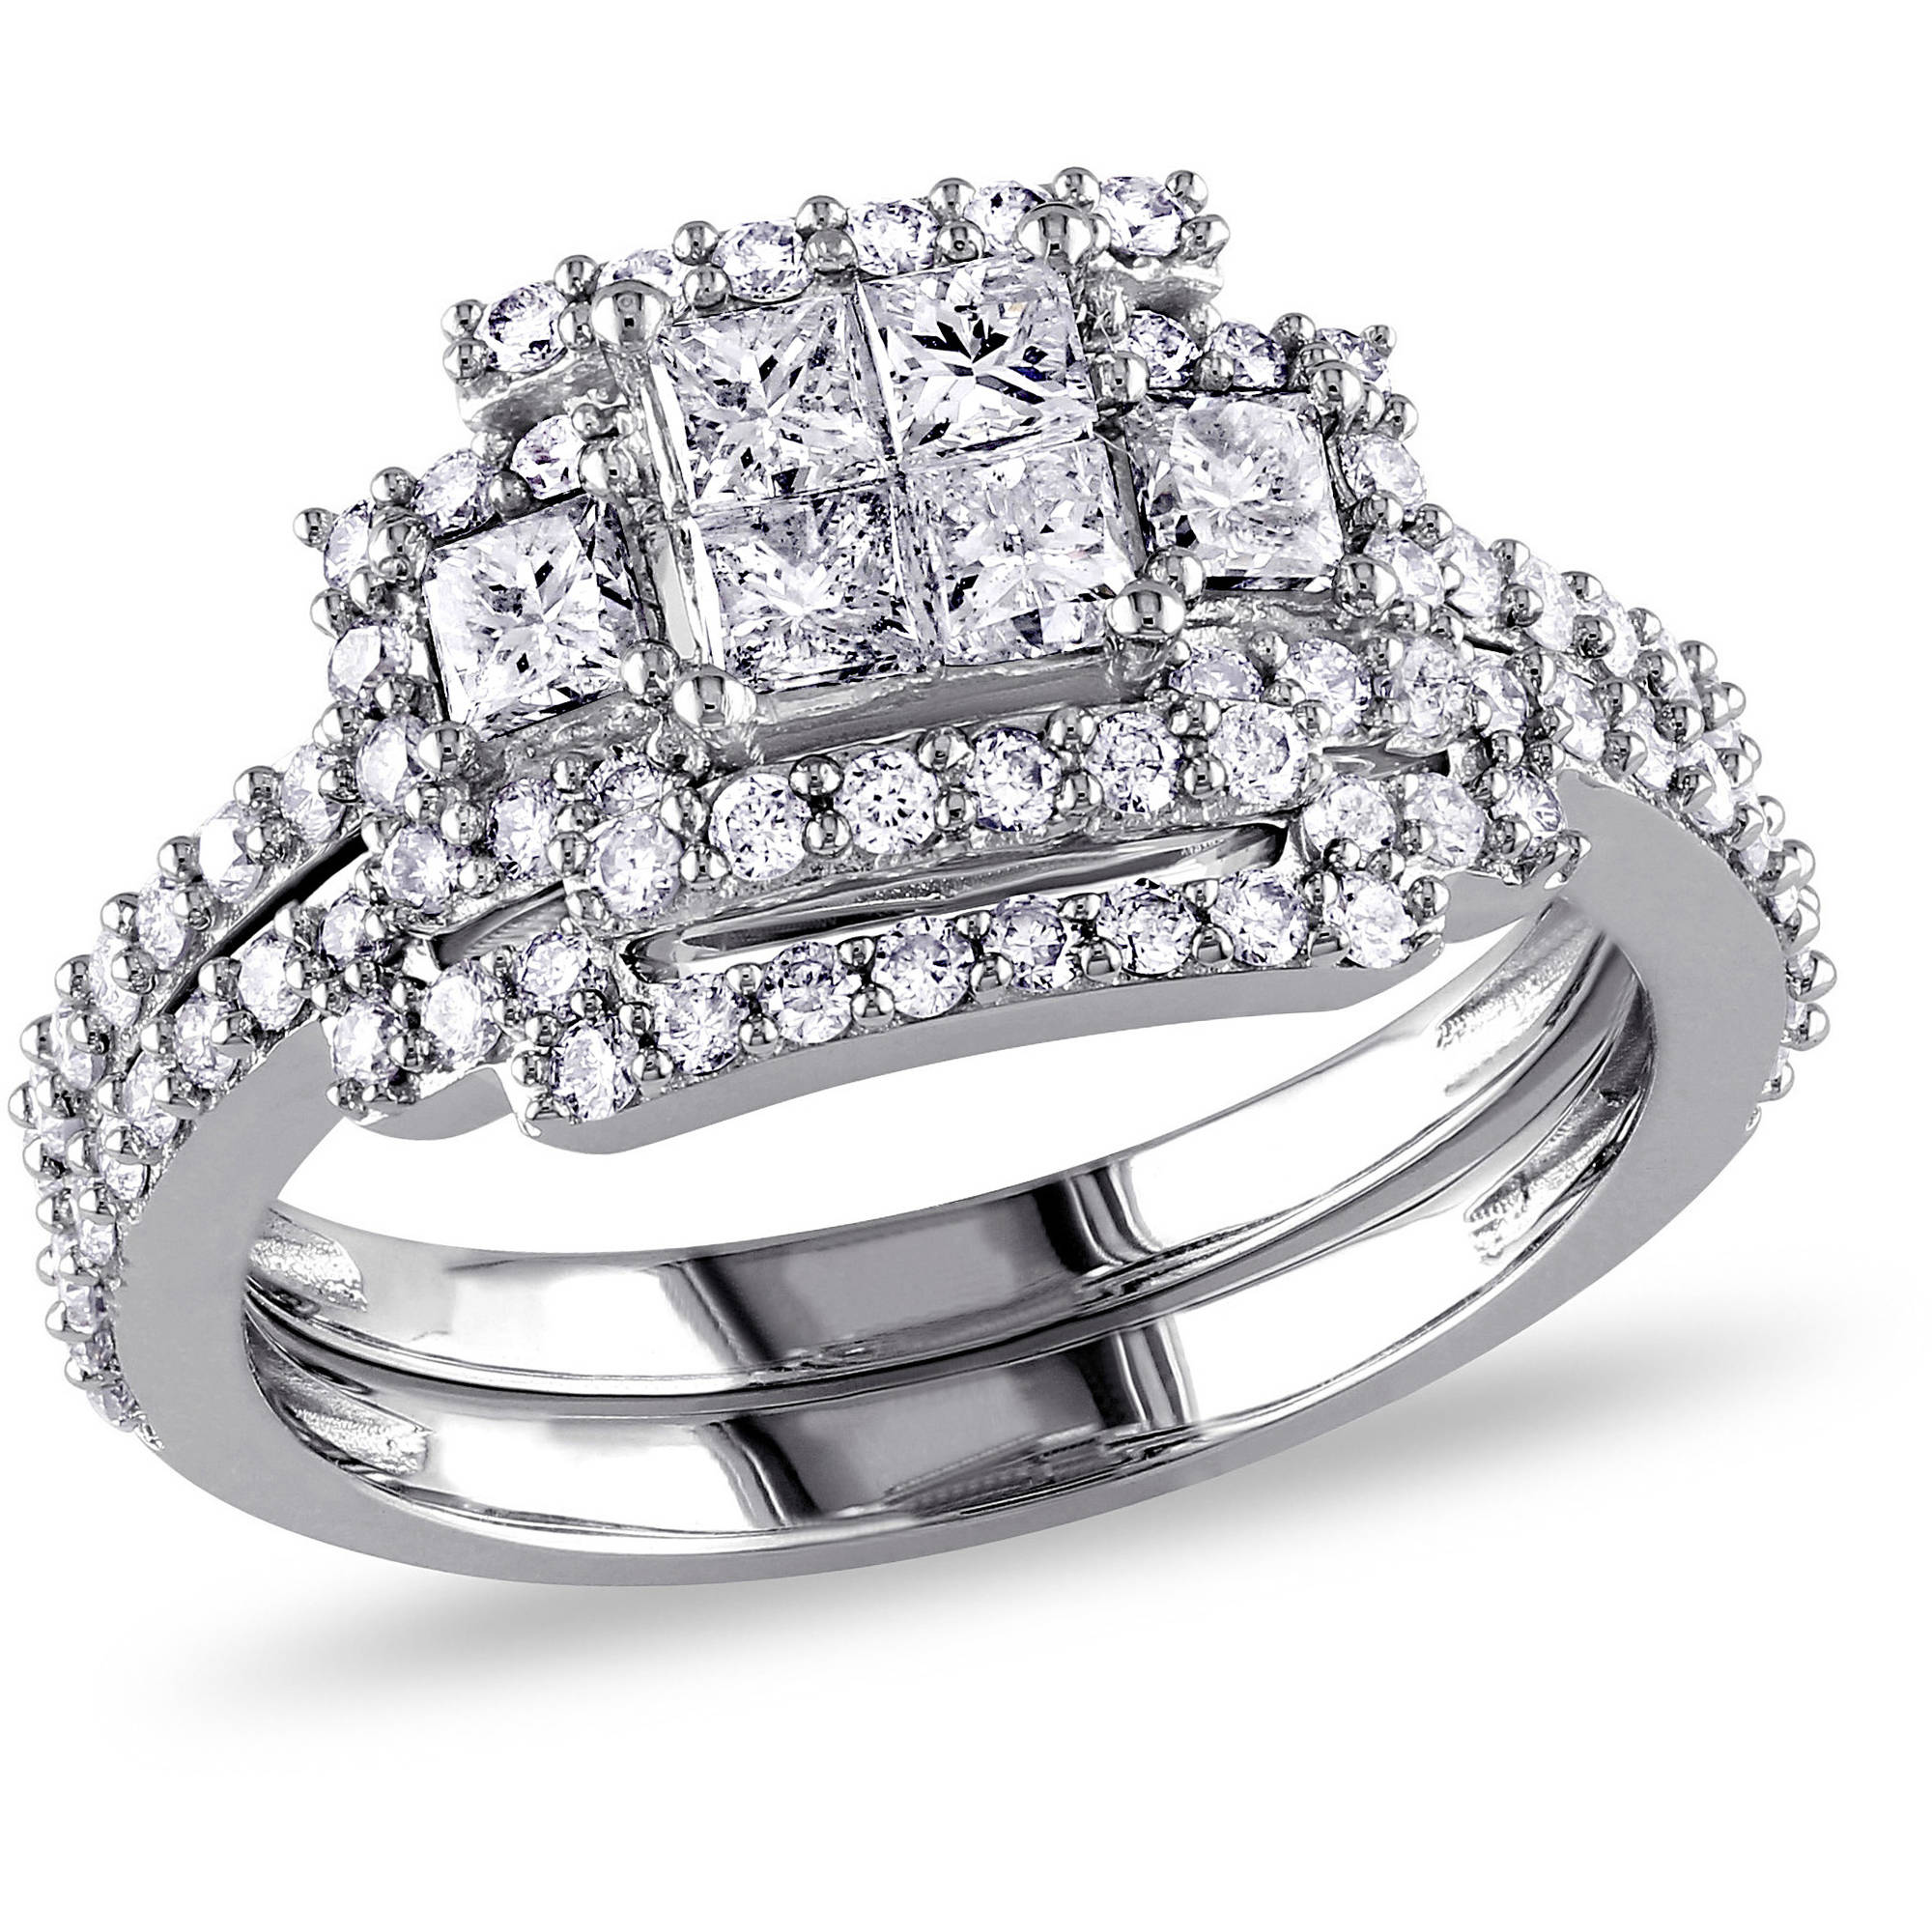 Miabella 1-1/5 Carat T.W. Princess and Round-Cut Diamond 14kt White Gold Bridal Set